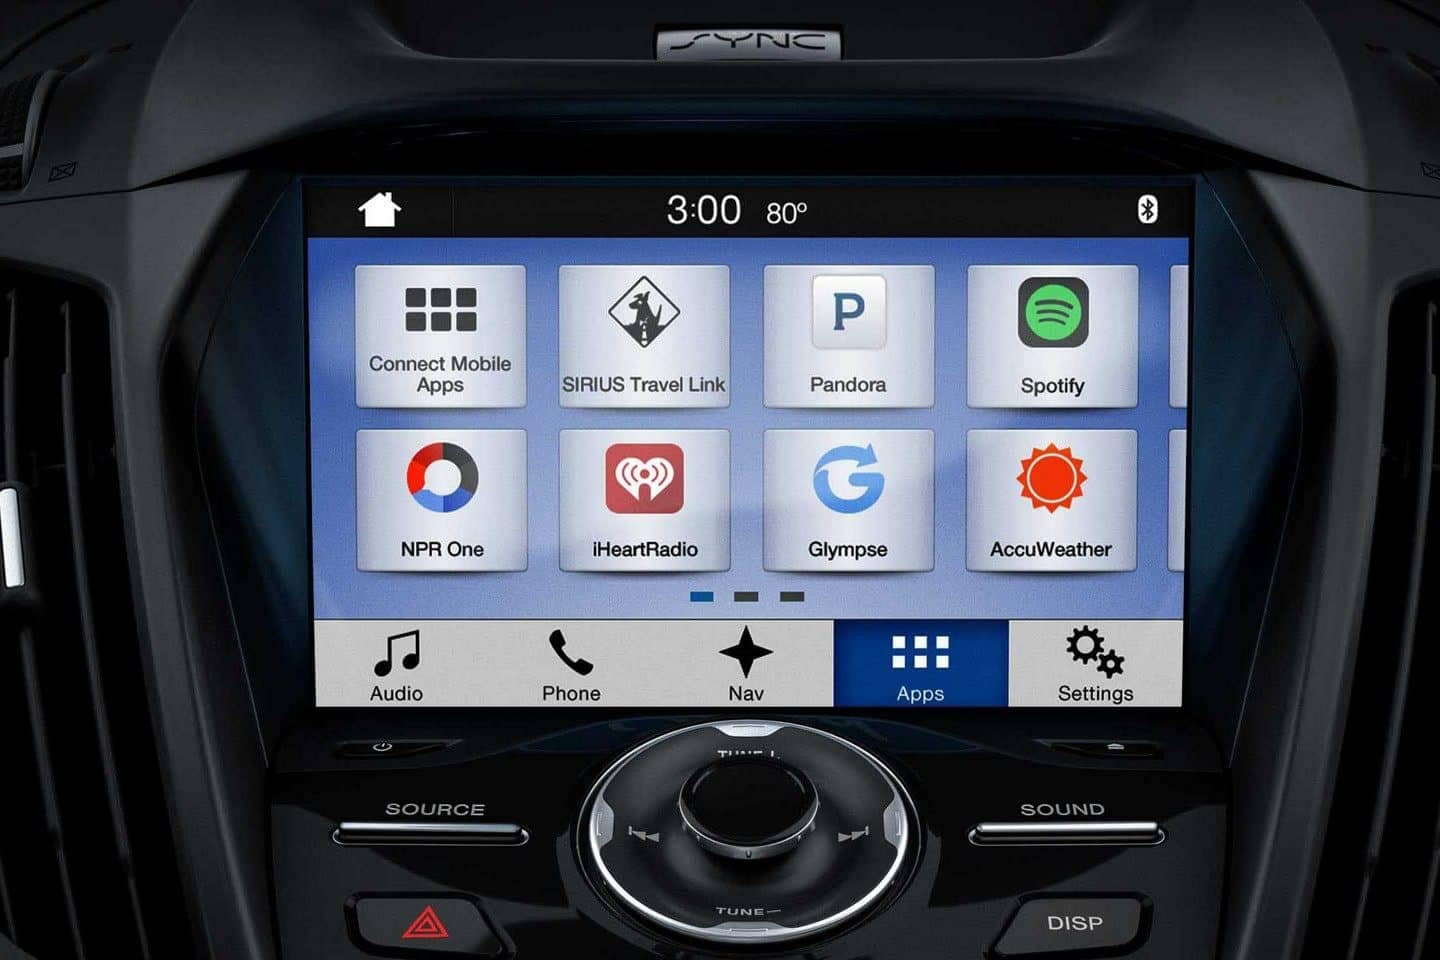 2018 Ford Escape Canada SYNC 3 with Apple CarPlay and Andriod Auto